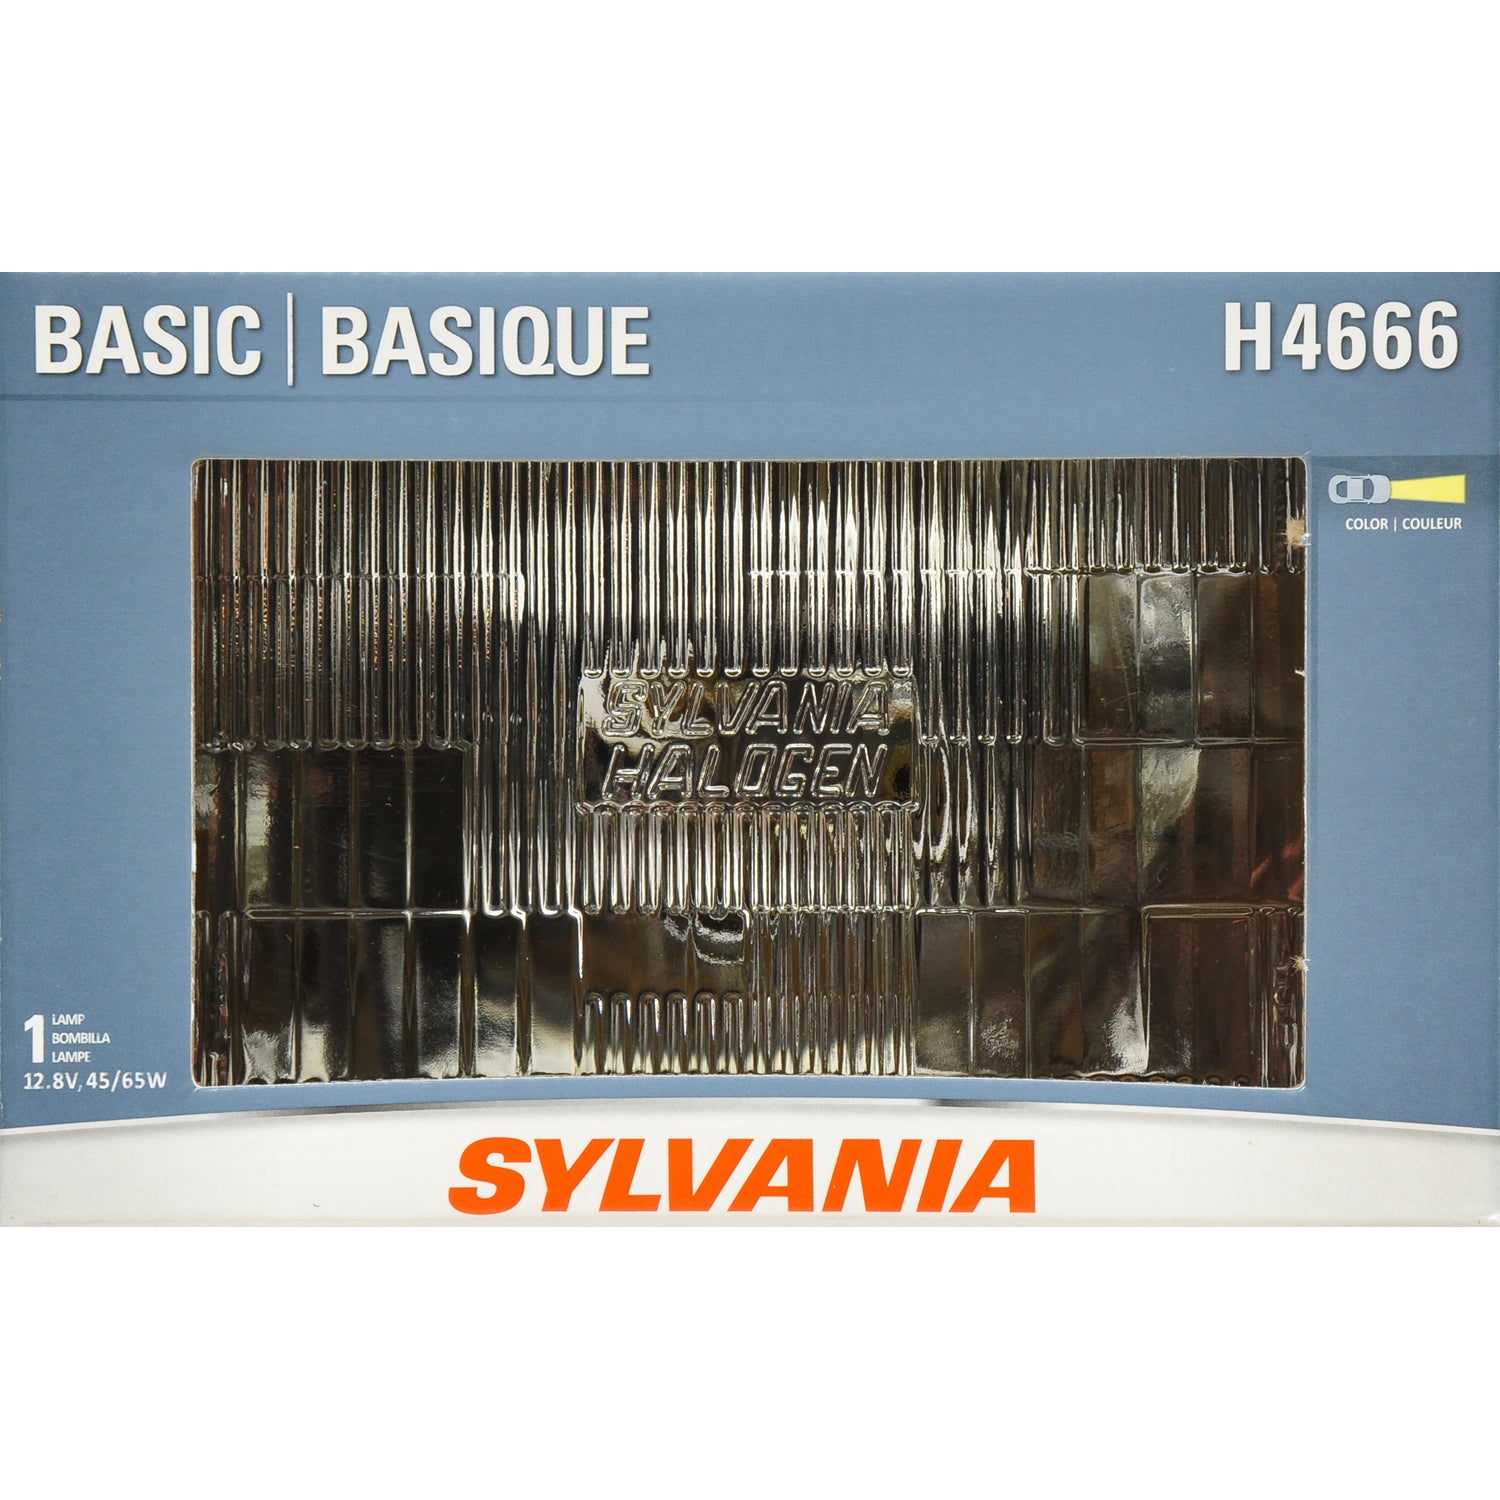 SYLVANIA H4666 2E1 Headlight 100x165 Automotive Bulb